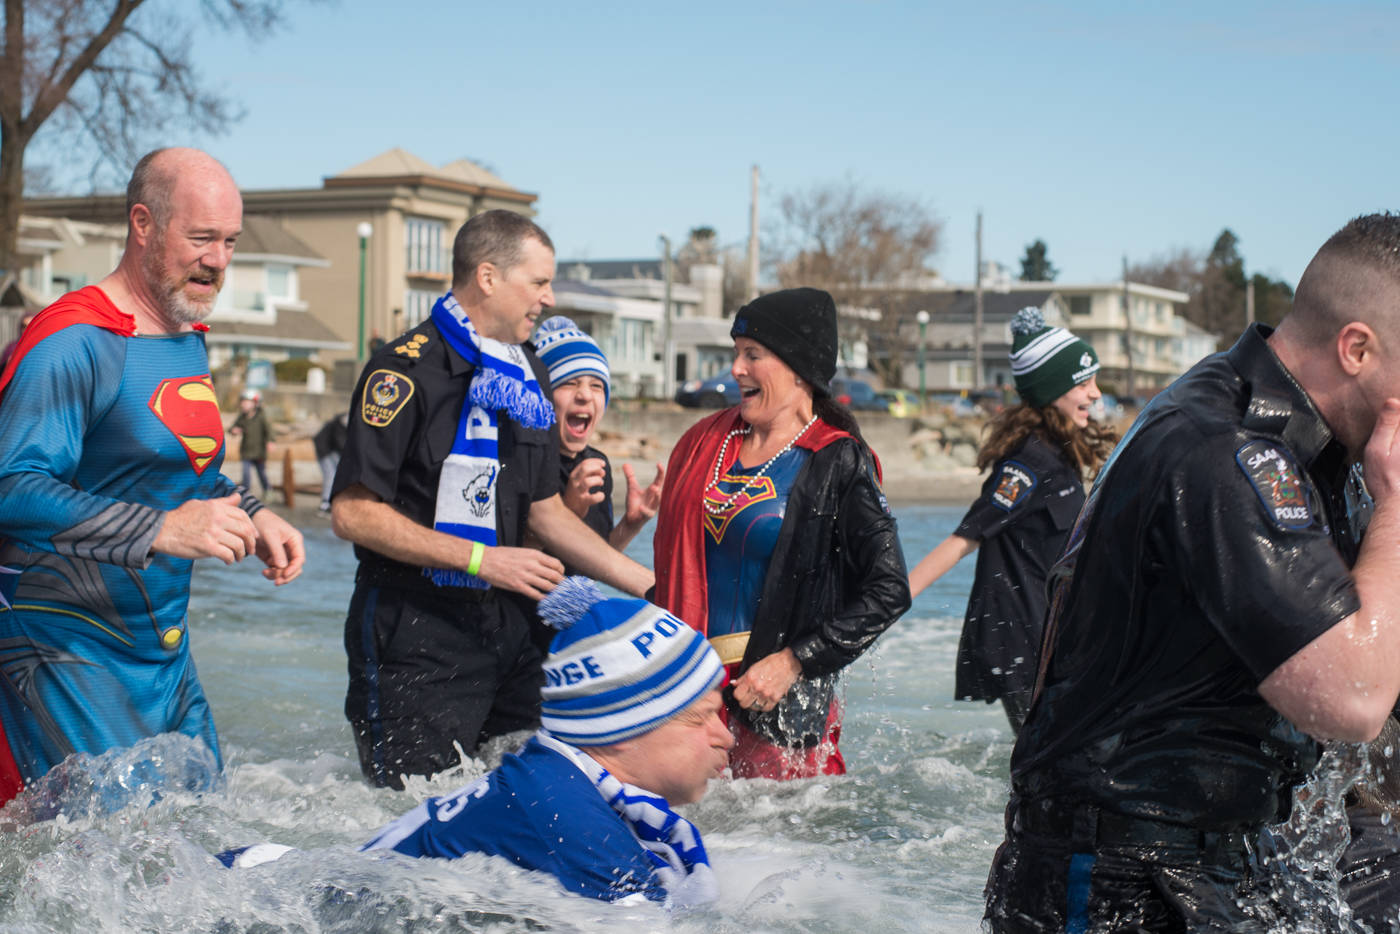 VIDEO: Polar plungers raise beyond $20,000 for Special Olympics BC